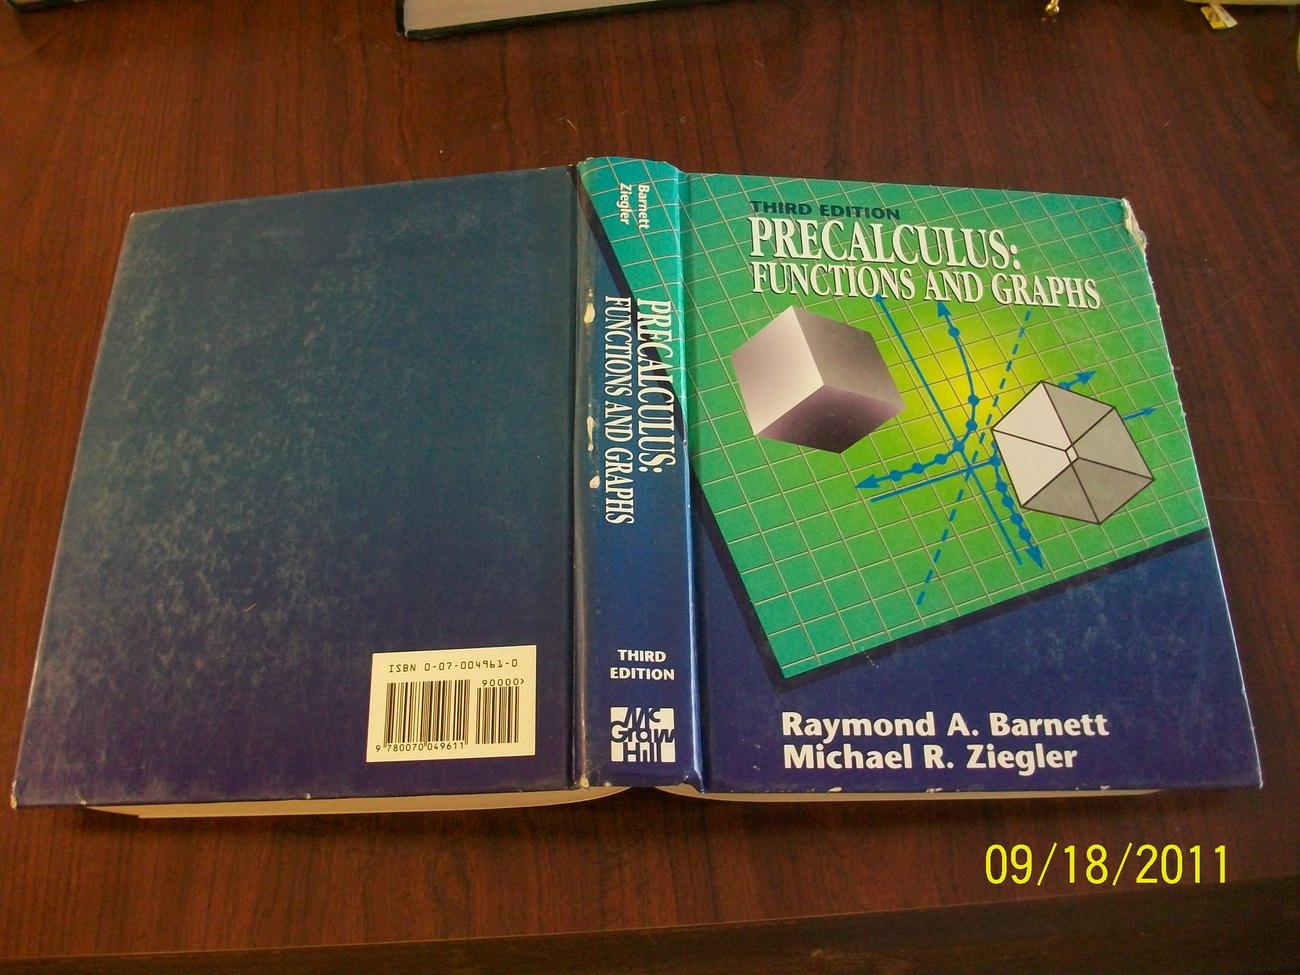 Precalculus: Functions and Graphs by Barnett & Ziegler, 1993